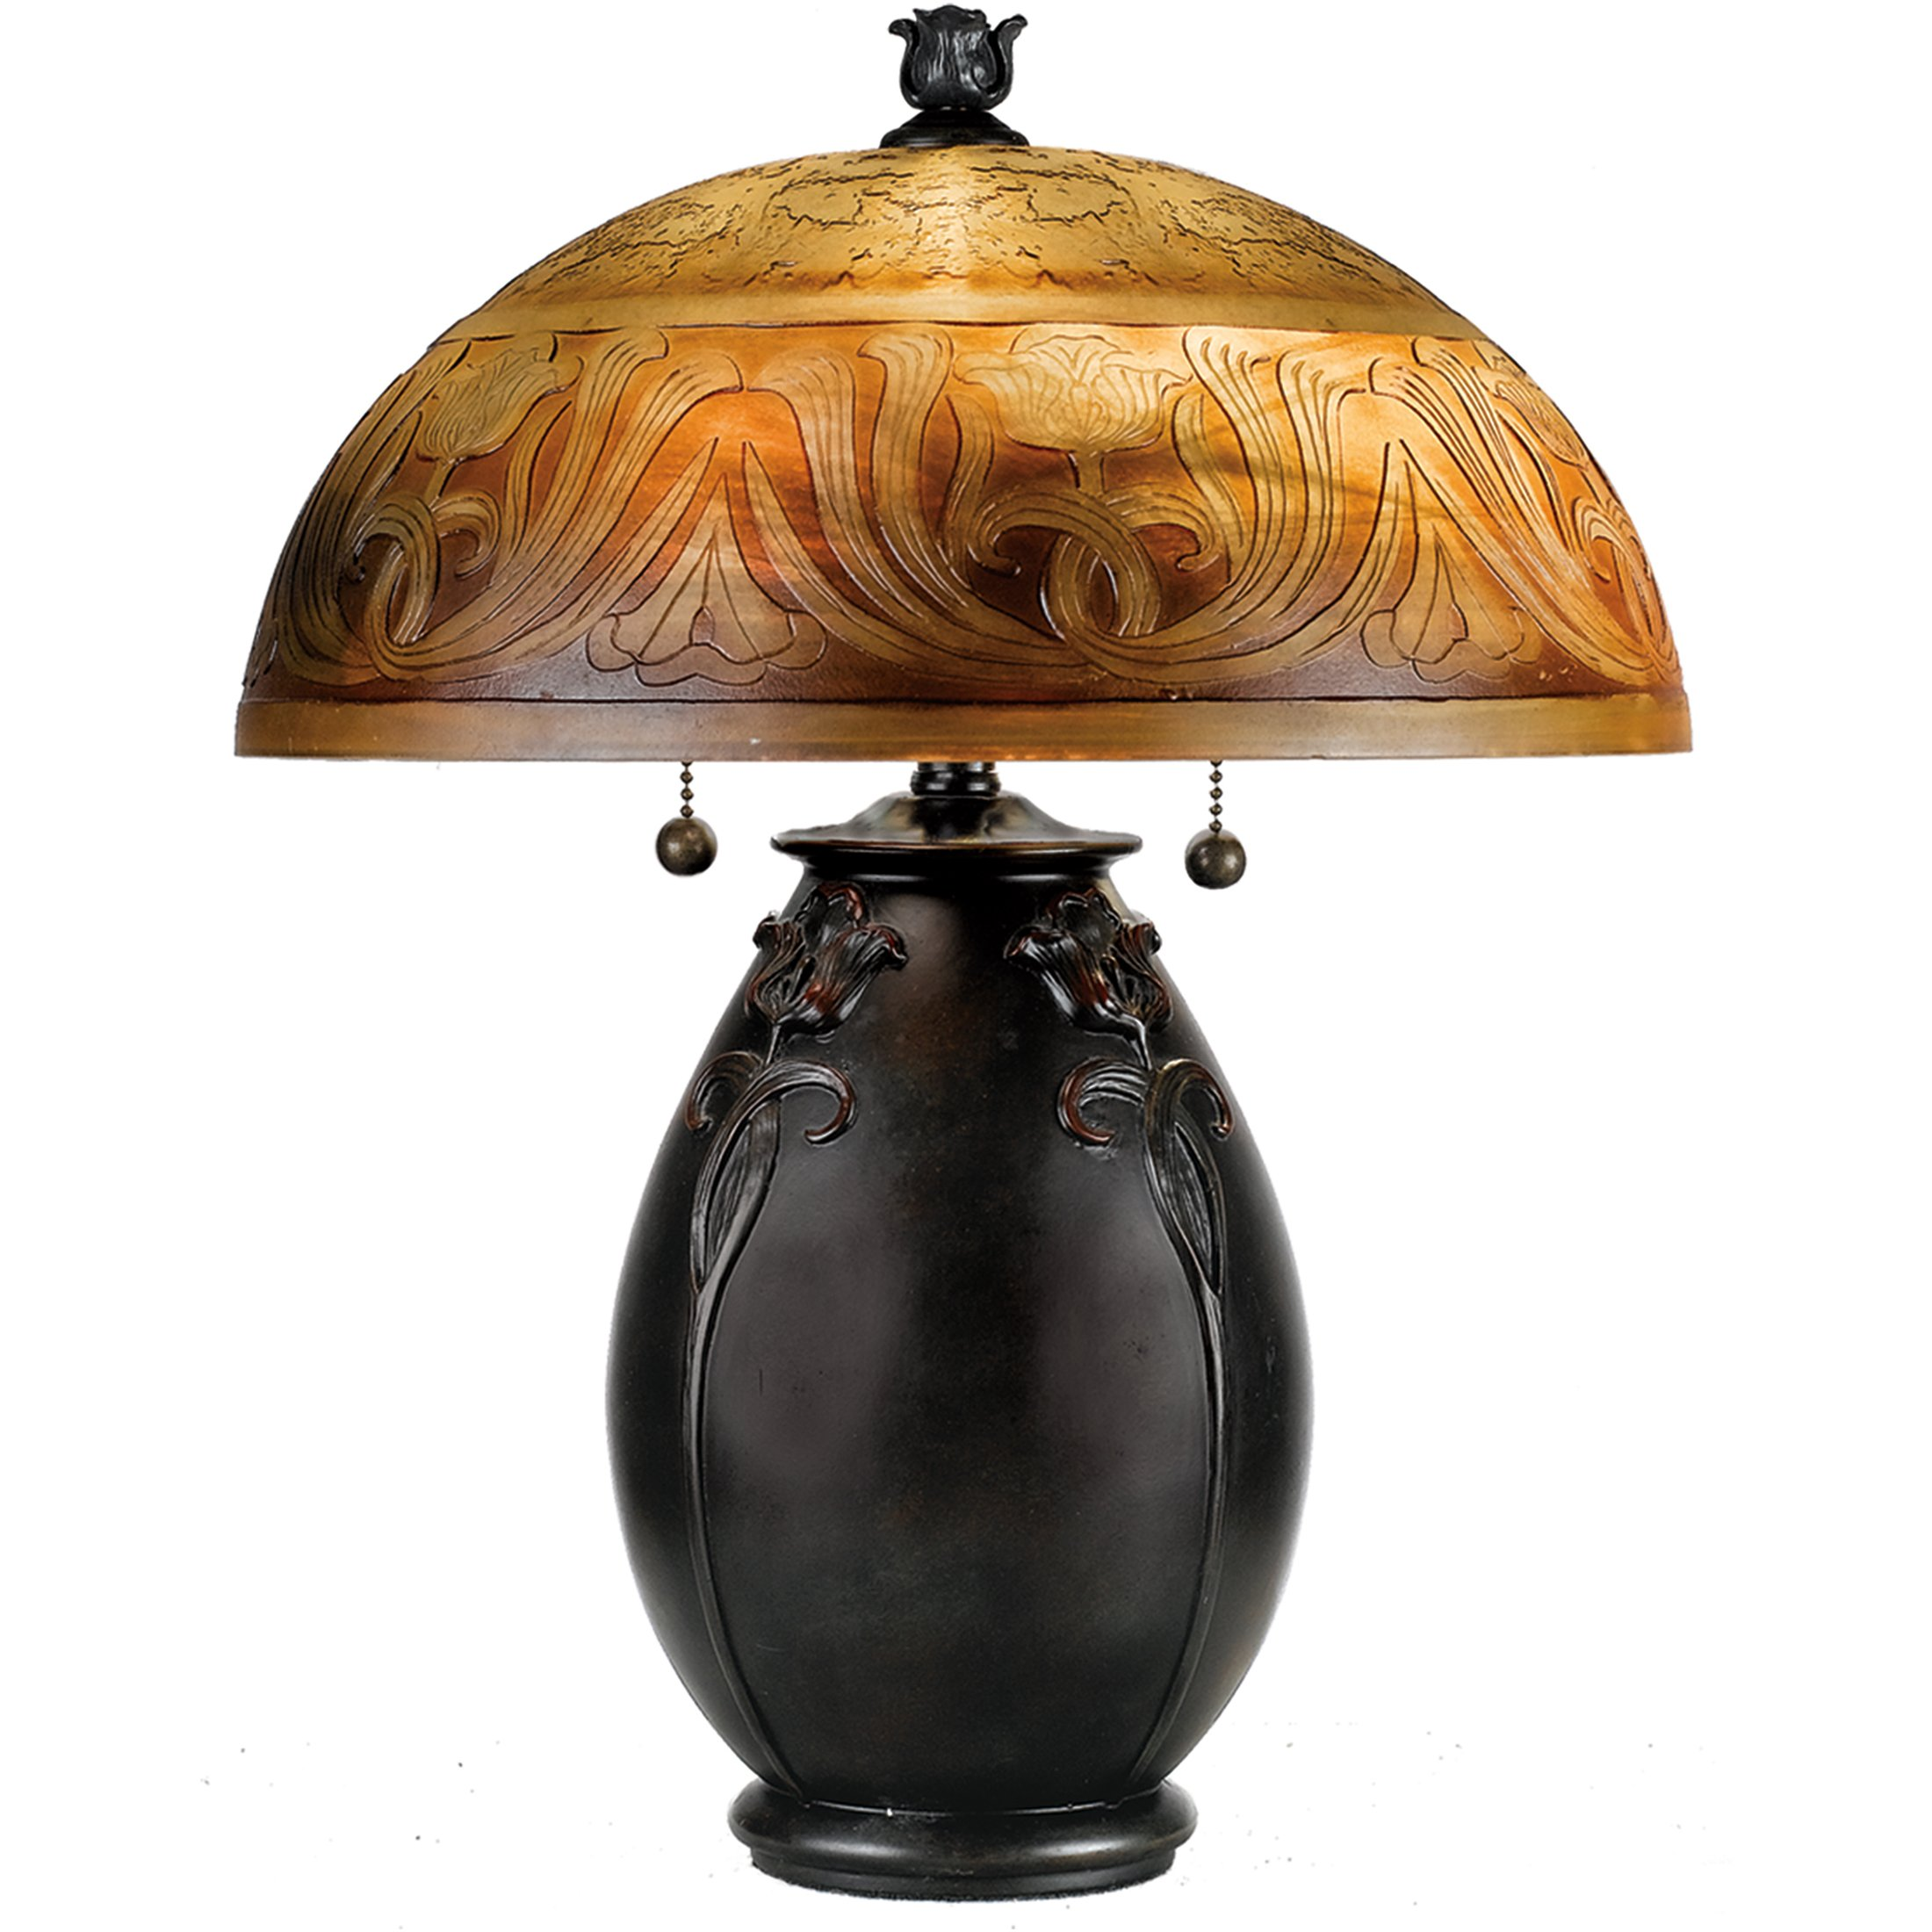 Quoizel QJ6781TR Glenhaven Etched Amber Glass Table Lamp, 2-Light, 120 Watts, Teco Rossa (18'' H x 14'' W)